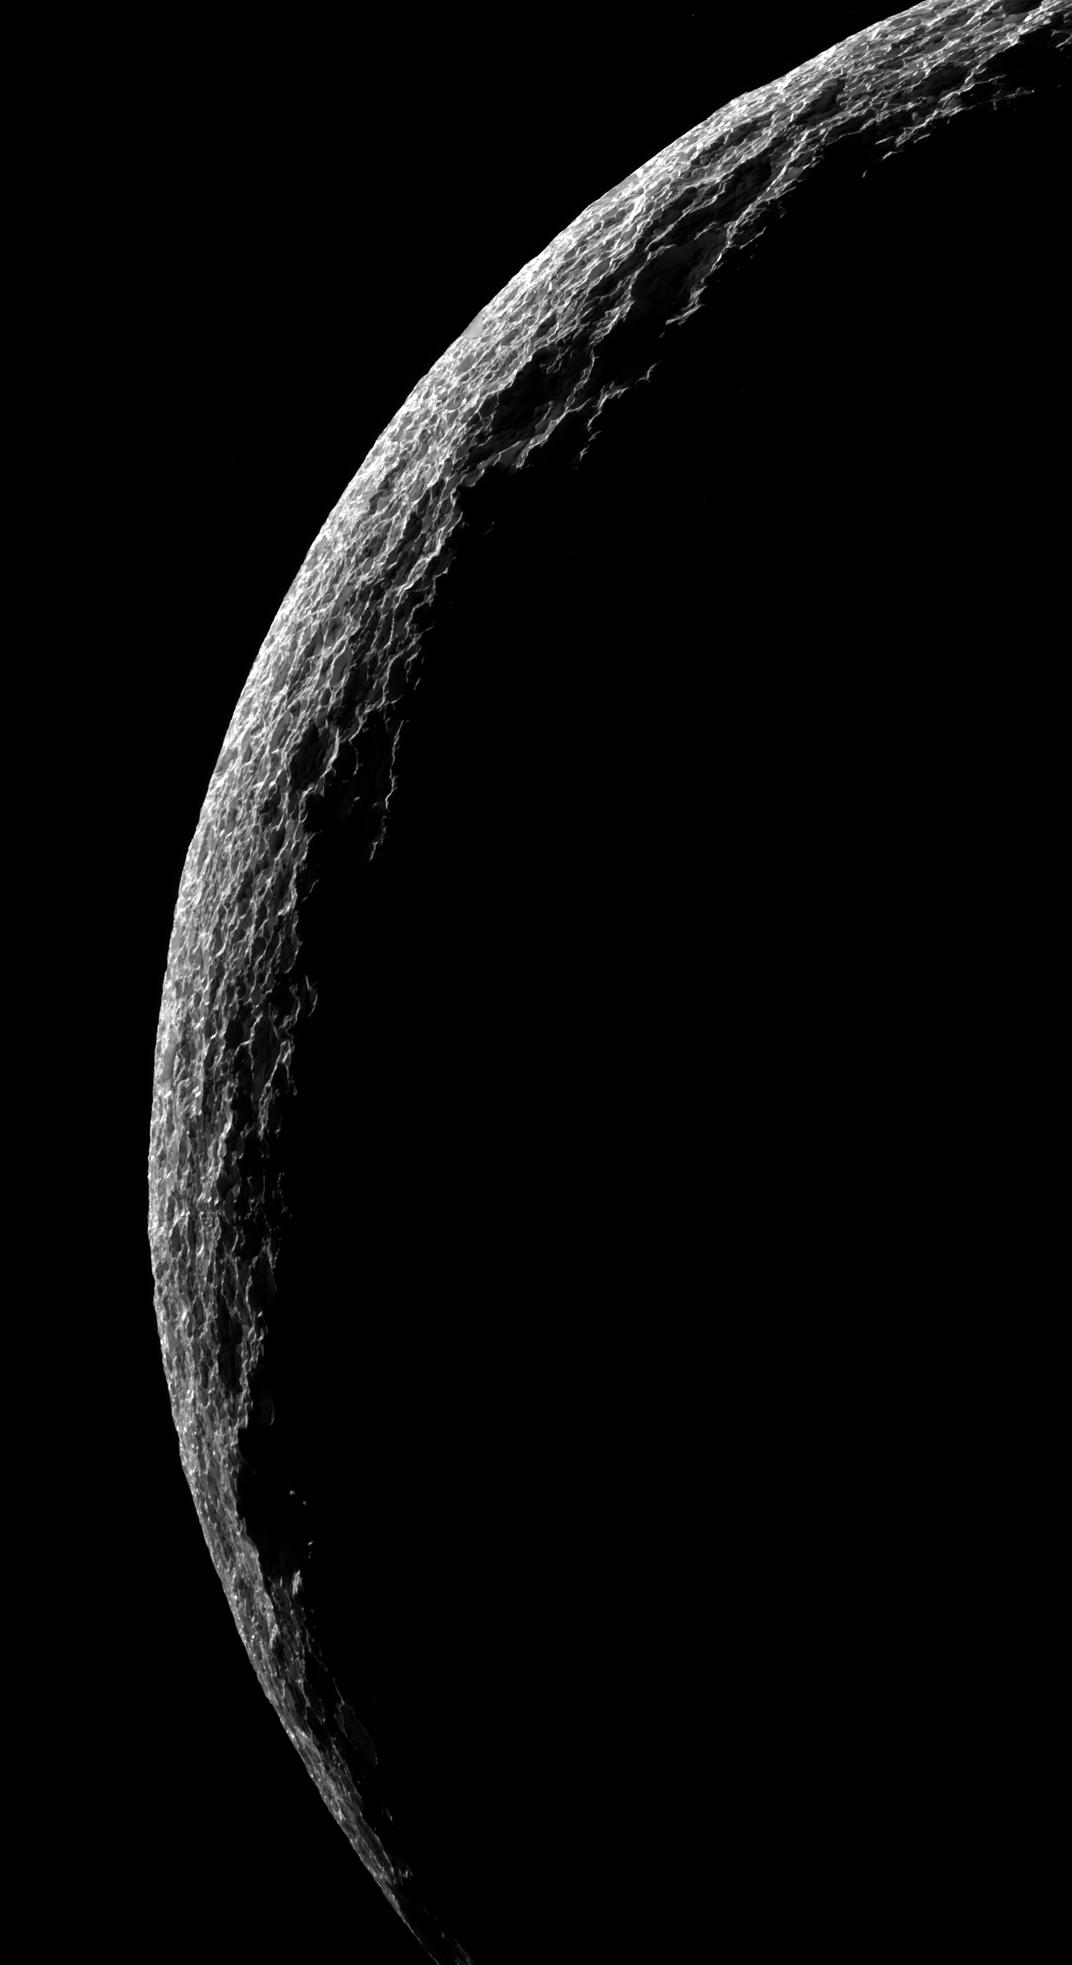 Tethys crescent view